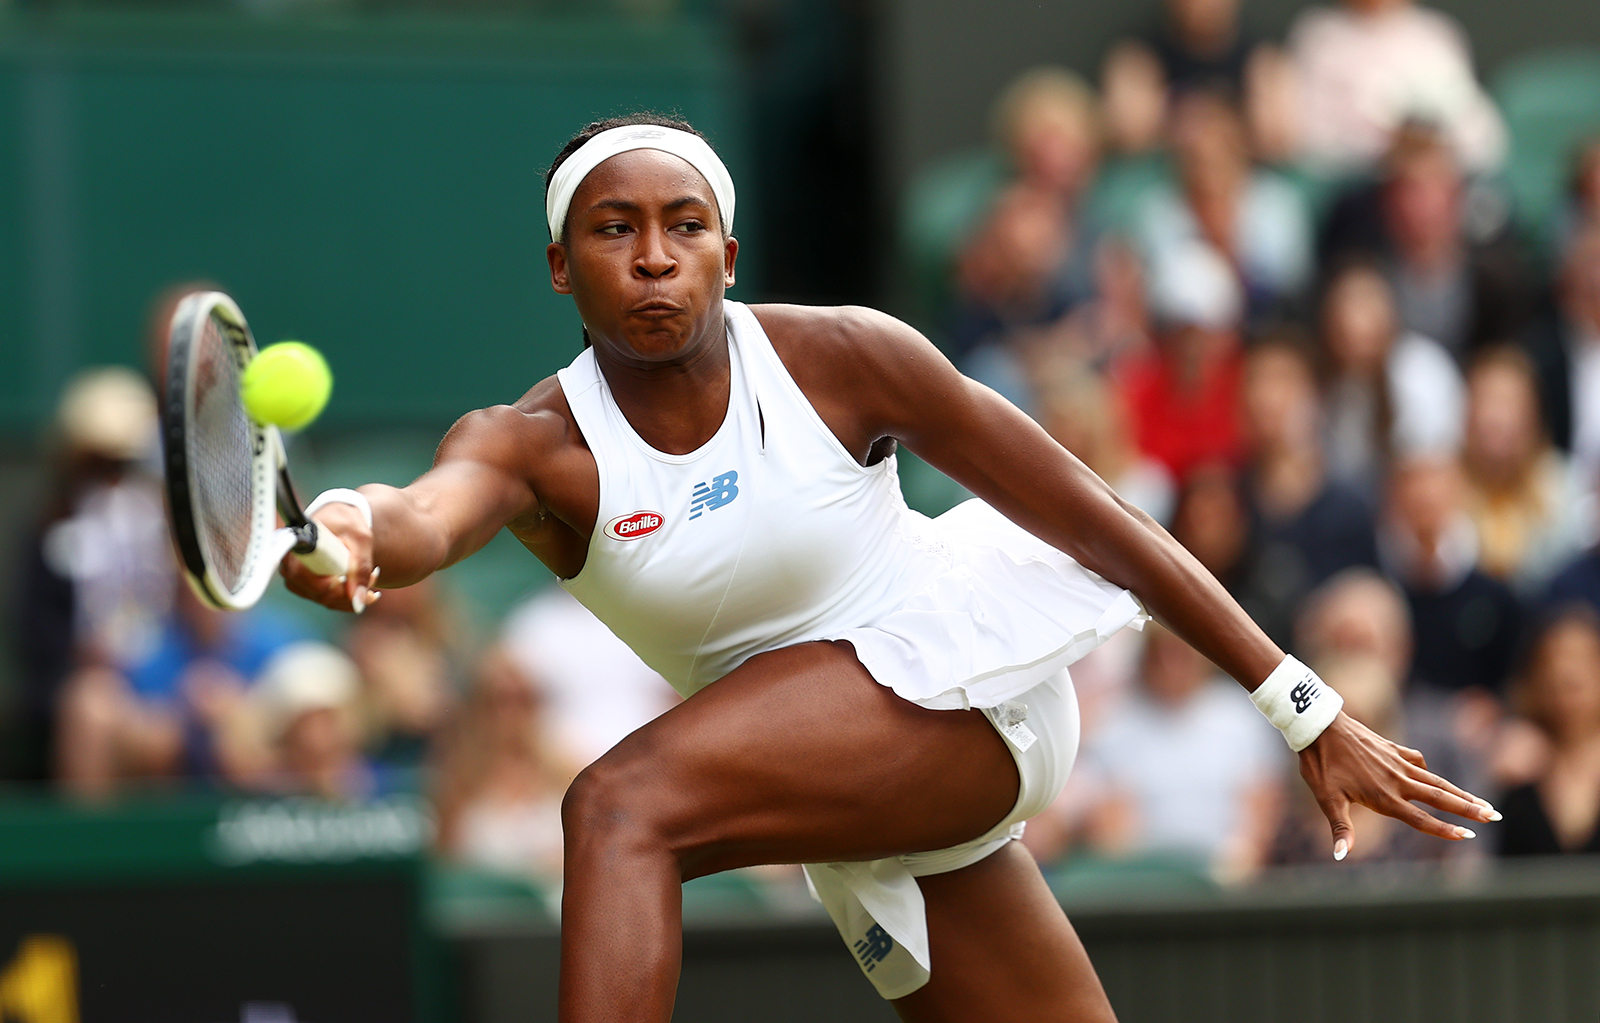 Coco Gauff competes in a match against Angelique Kerber of Germany during Wimbledon on July 5 in London, England. Gauff will miss the Tokyo Olympics after announcing on Twitter July 18 she tested positive for Covid-19.